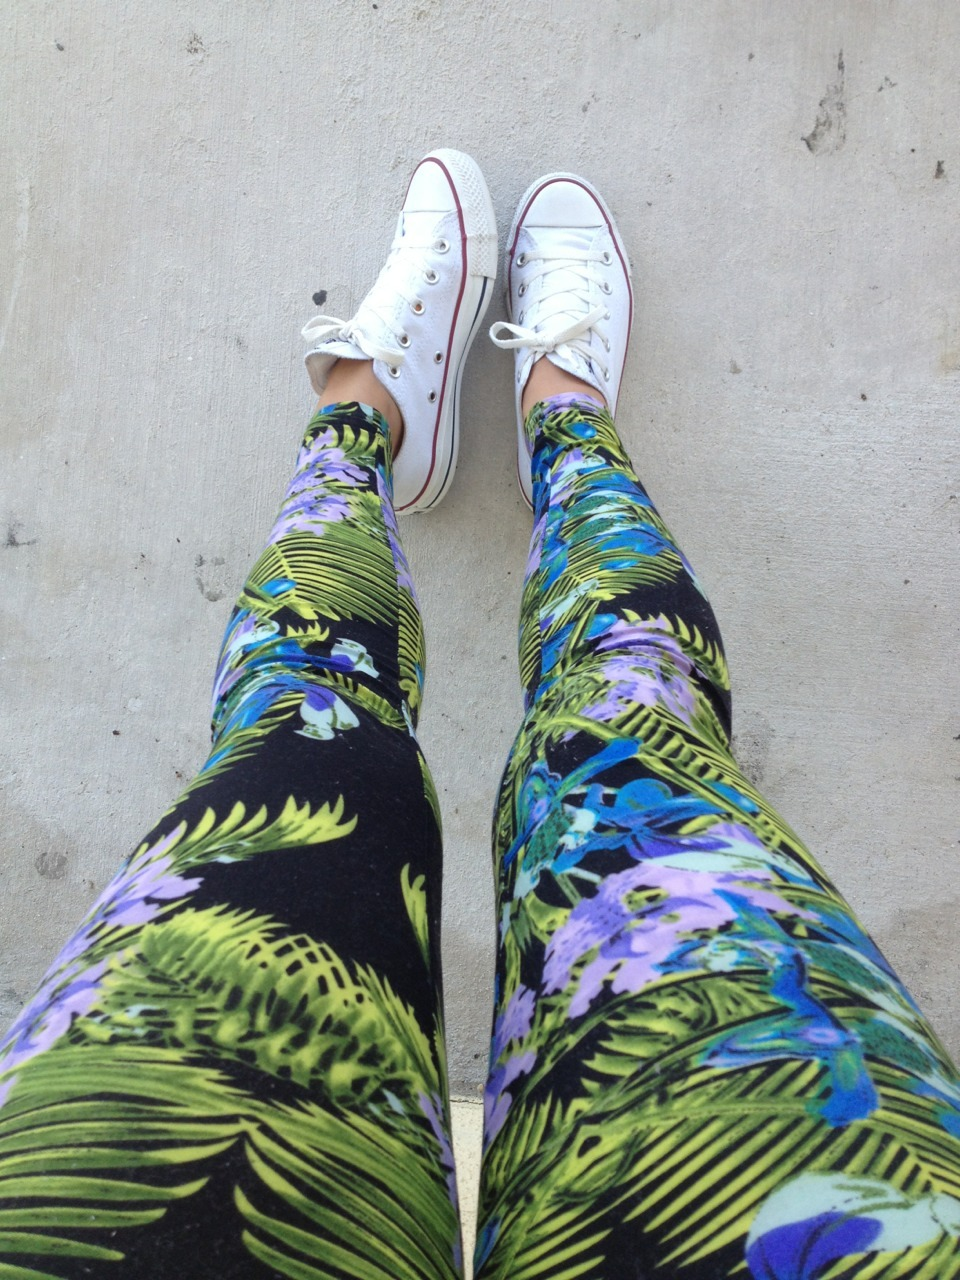 bossily:  queenofsabah:  oknope:  i want the legging  ☯  wannnnnnnt